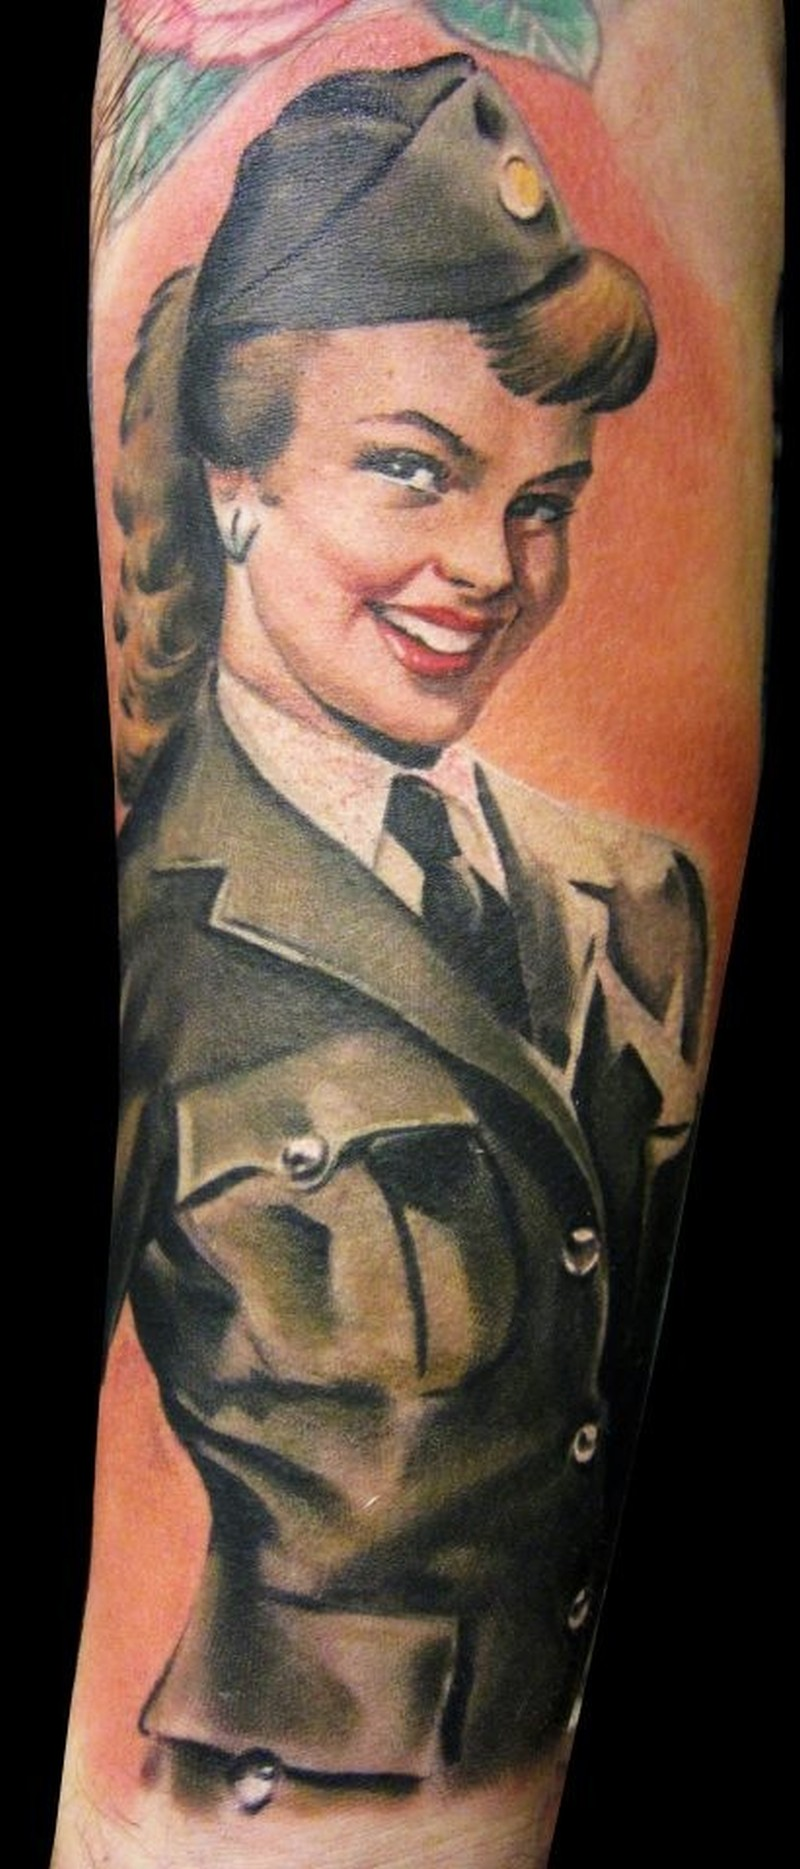 vintage military pin up girl tattoo by matteo pasqualin tattoos book tattoos designs. Black Bedroom Furniture Sets. Home Design Ideas